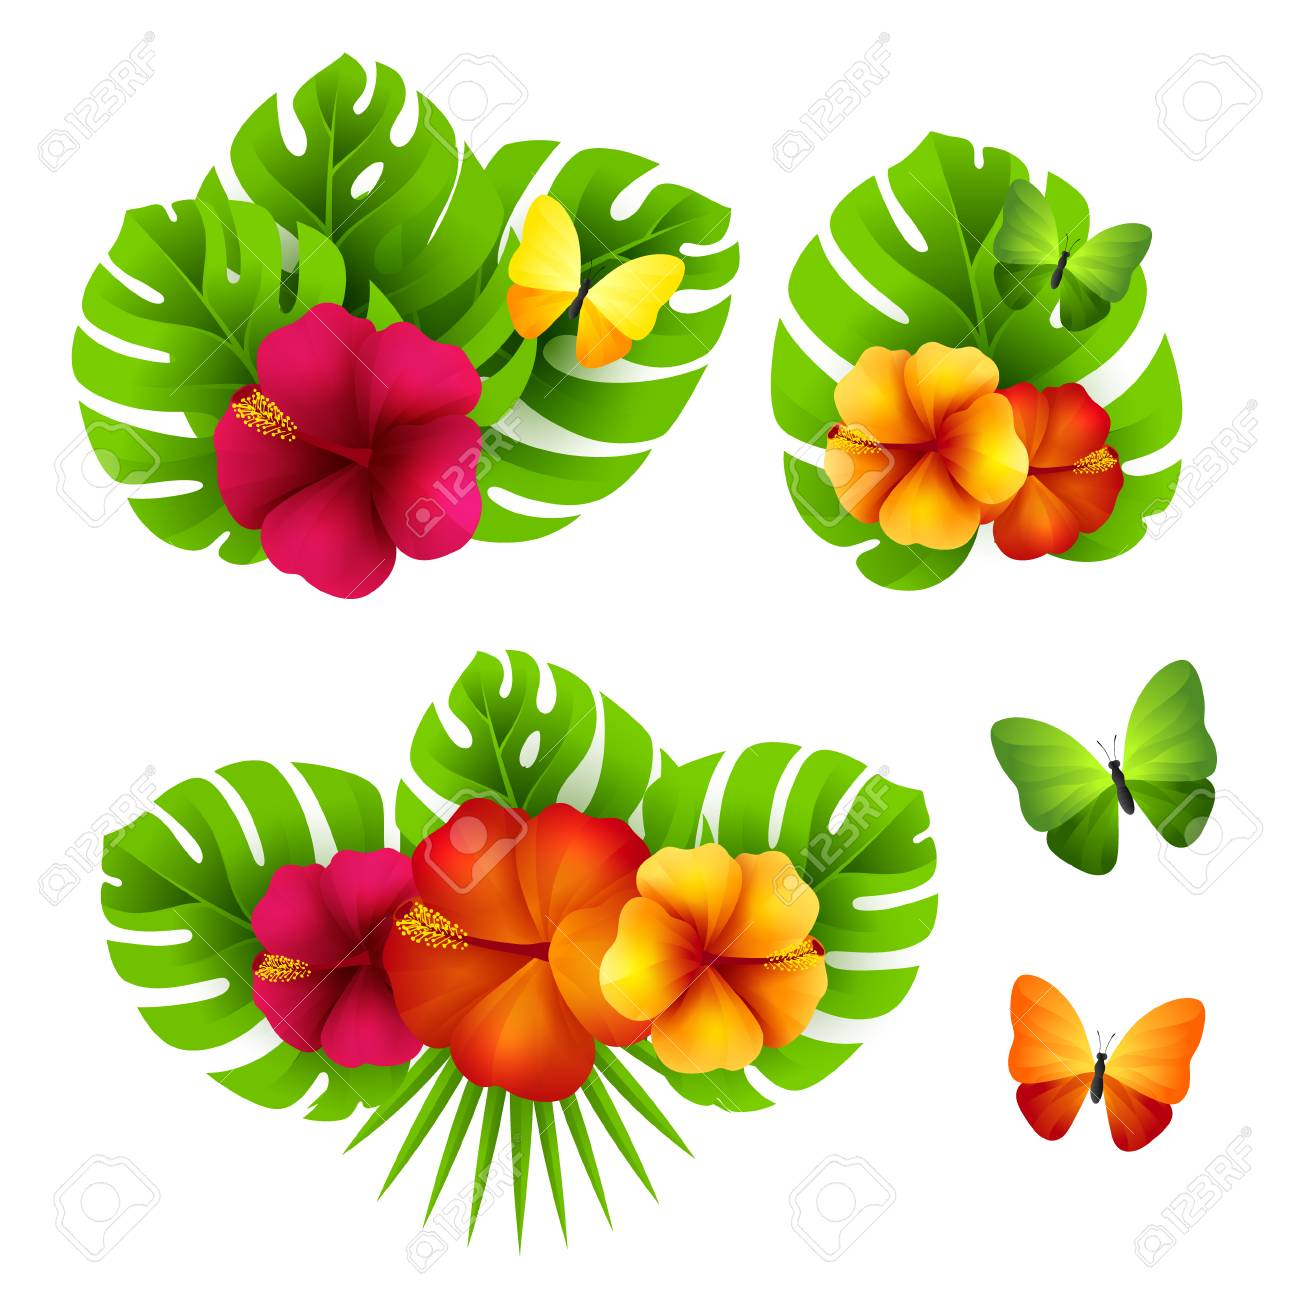 Tropical Design Elements With Palm Leaves Flowers And Butterflies Royalty Free Cliparts Vectors And Stock Illustration Image 62601002 This set of 8 high quality hand painted watercolor tropical bouquets perfect graphic for invitations, greeting cards, wallart, posters, logo, quotes and more. tropical design elements with palm leaves flowers and butterflies royalty free cliparts vectors and stock illustration image 62601002